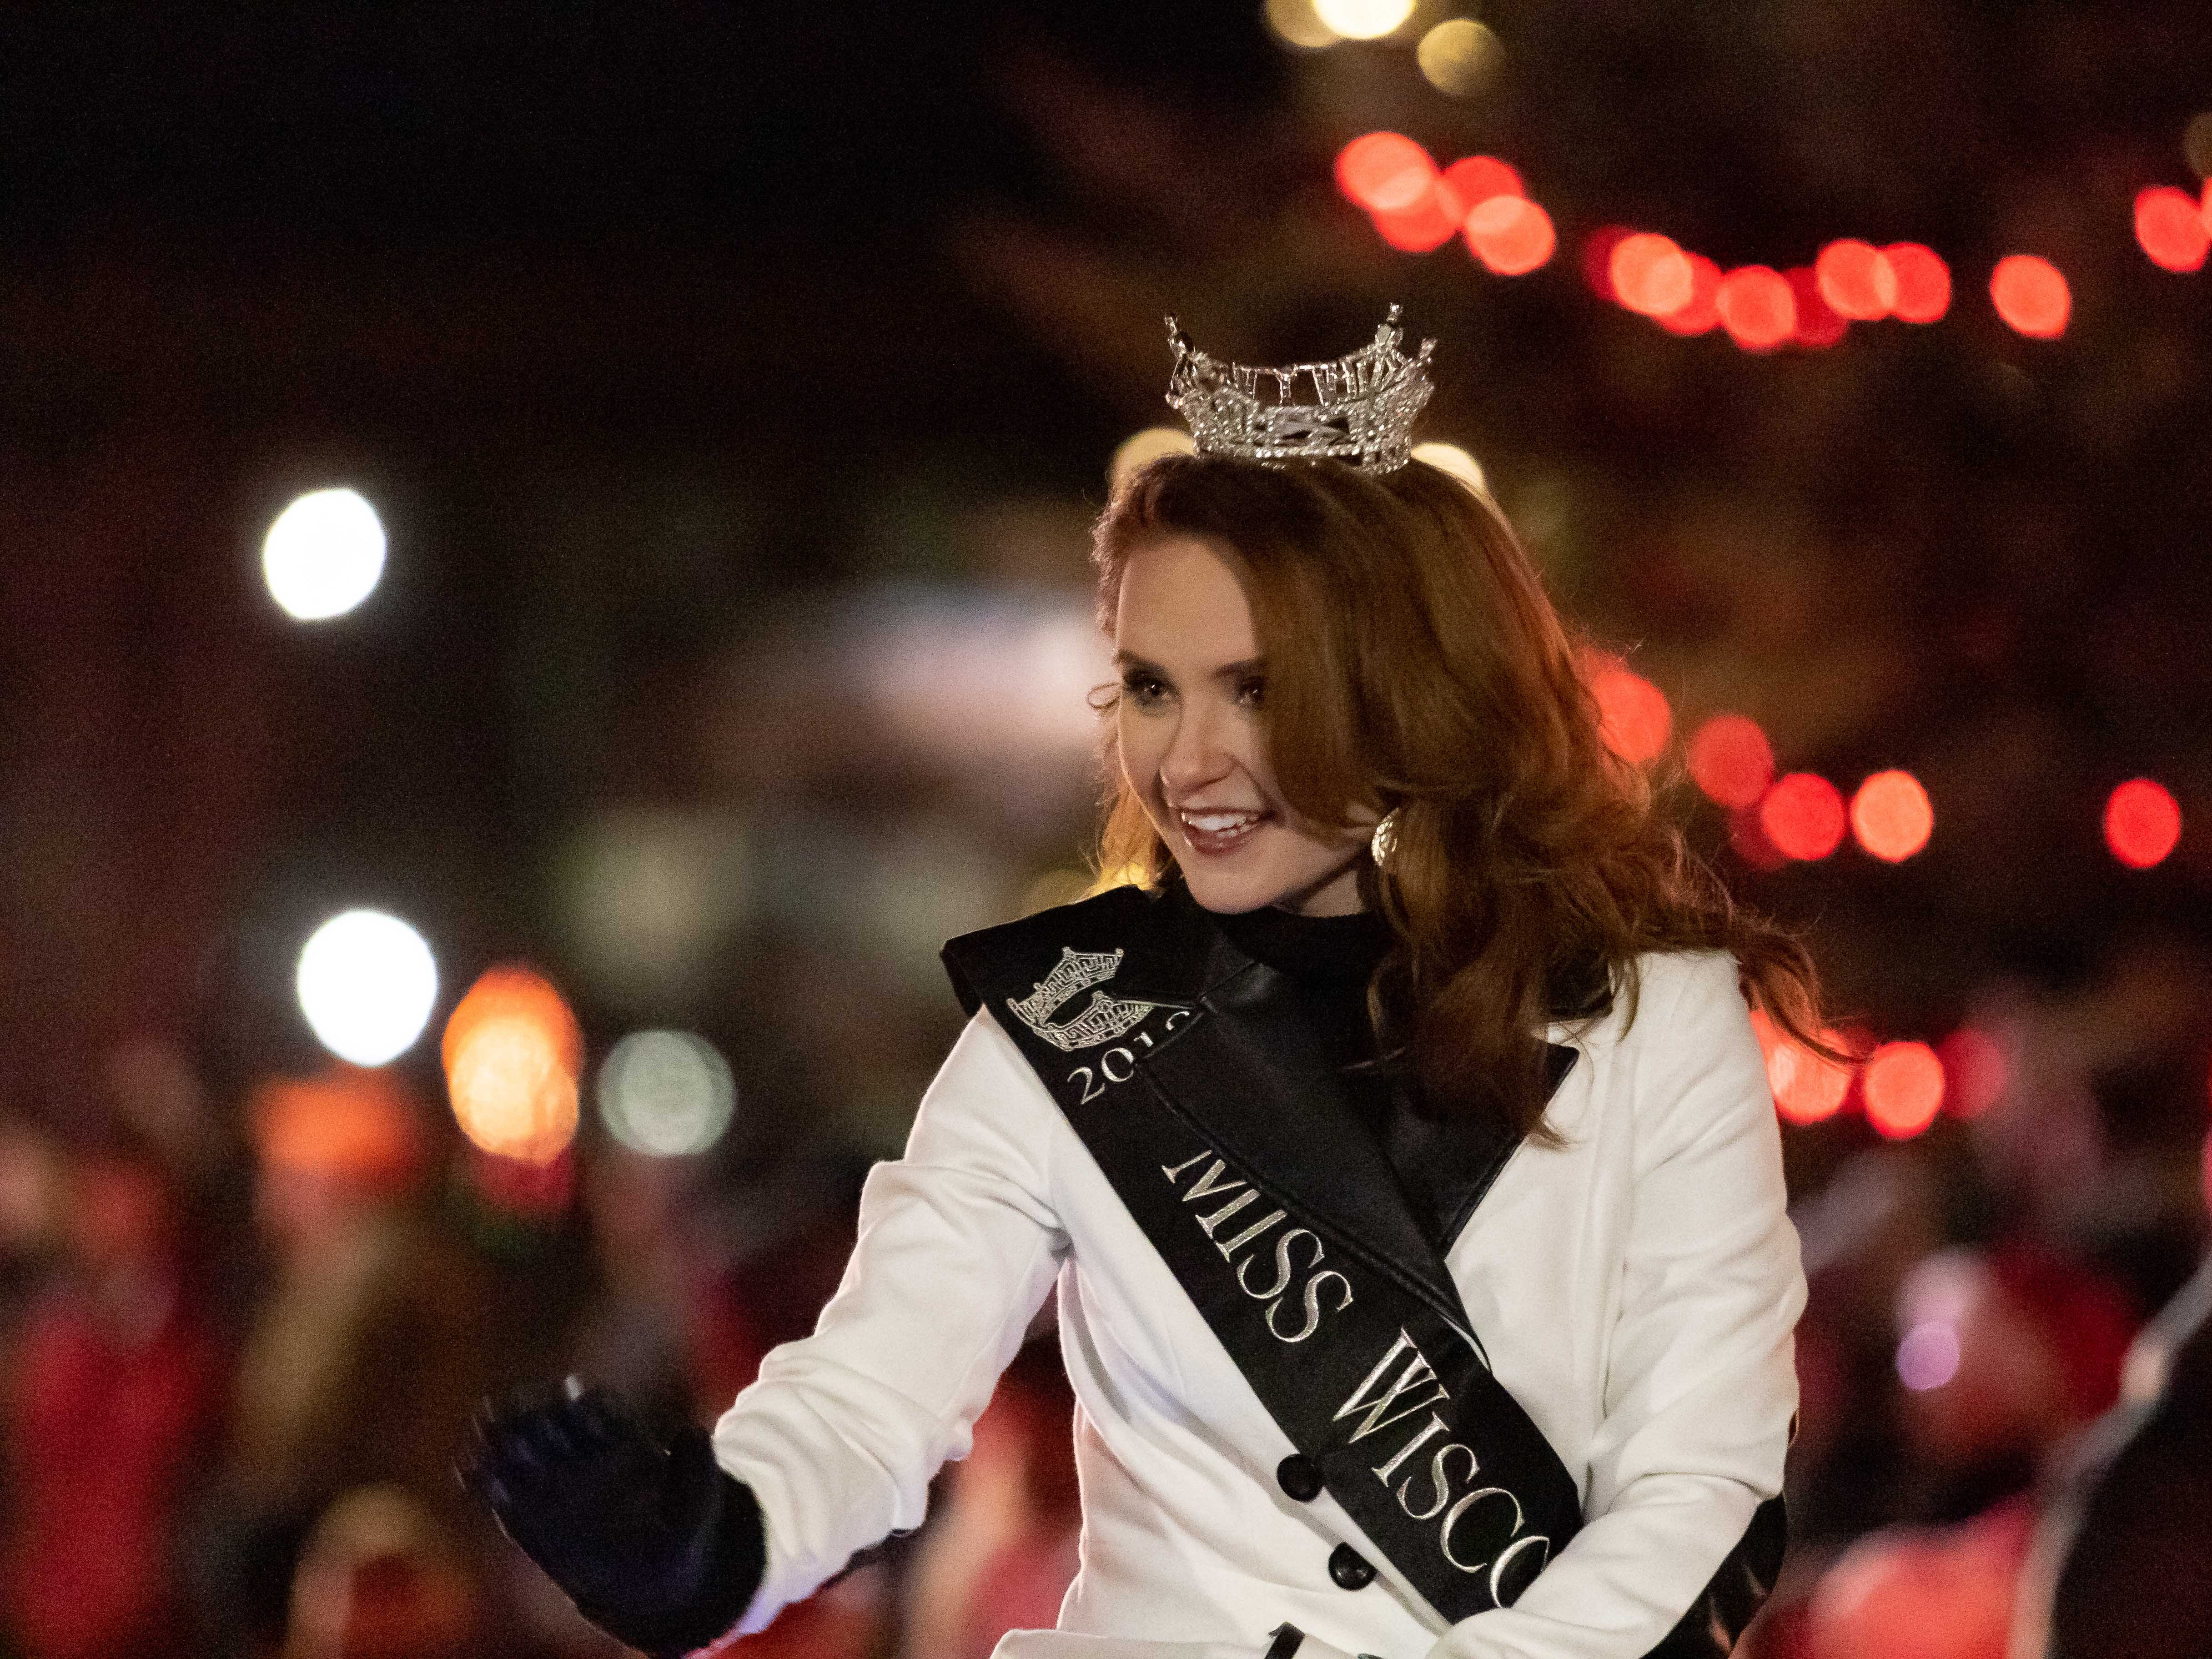 Miss Wisconsin 2018 Tianna Vanderhei waves to the crowd gathered for the Rekindle the Spirit holiday parade on Wednesday, Nov. 21, 2018, in downtown Wisconsin Rapids.